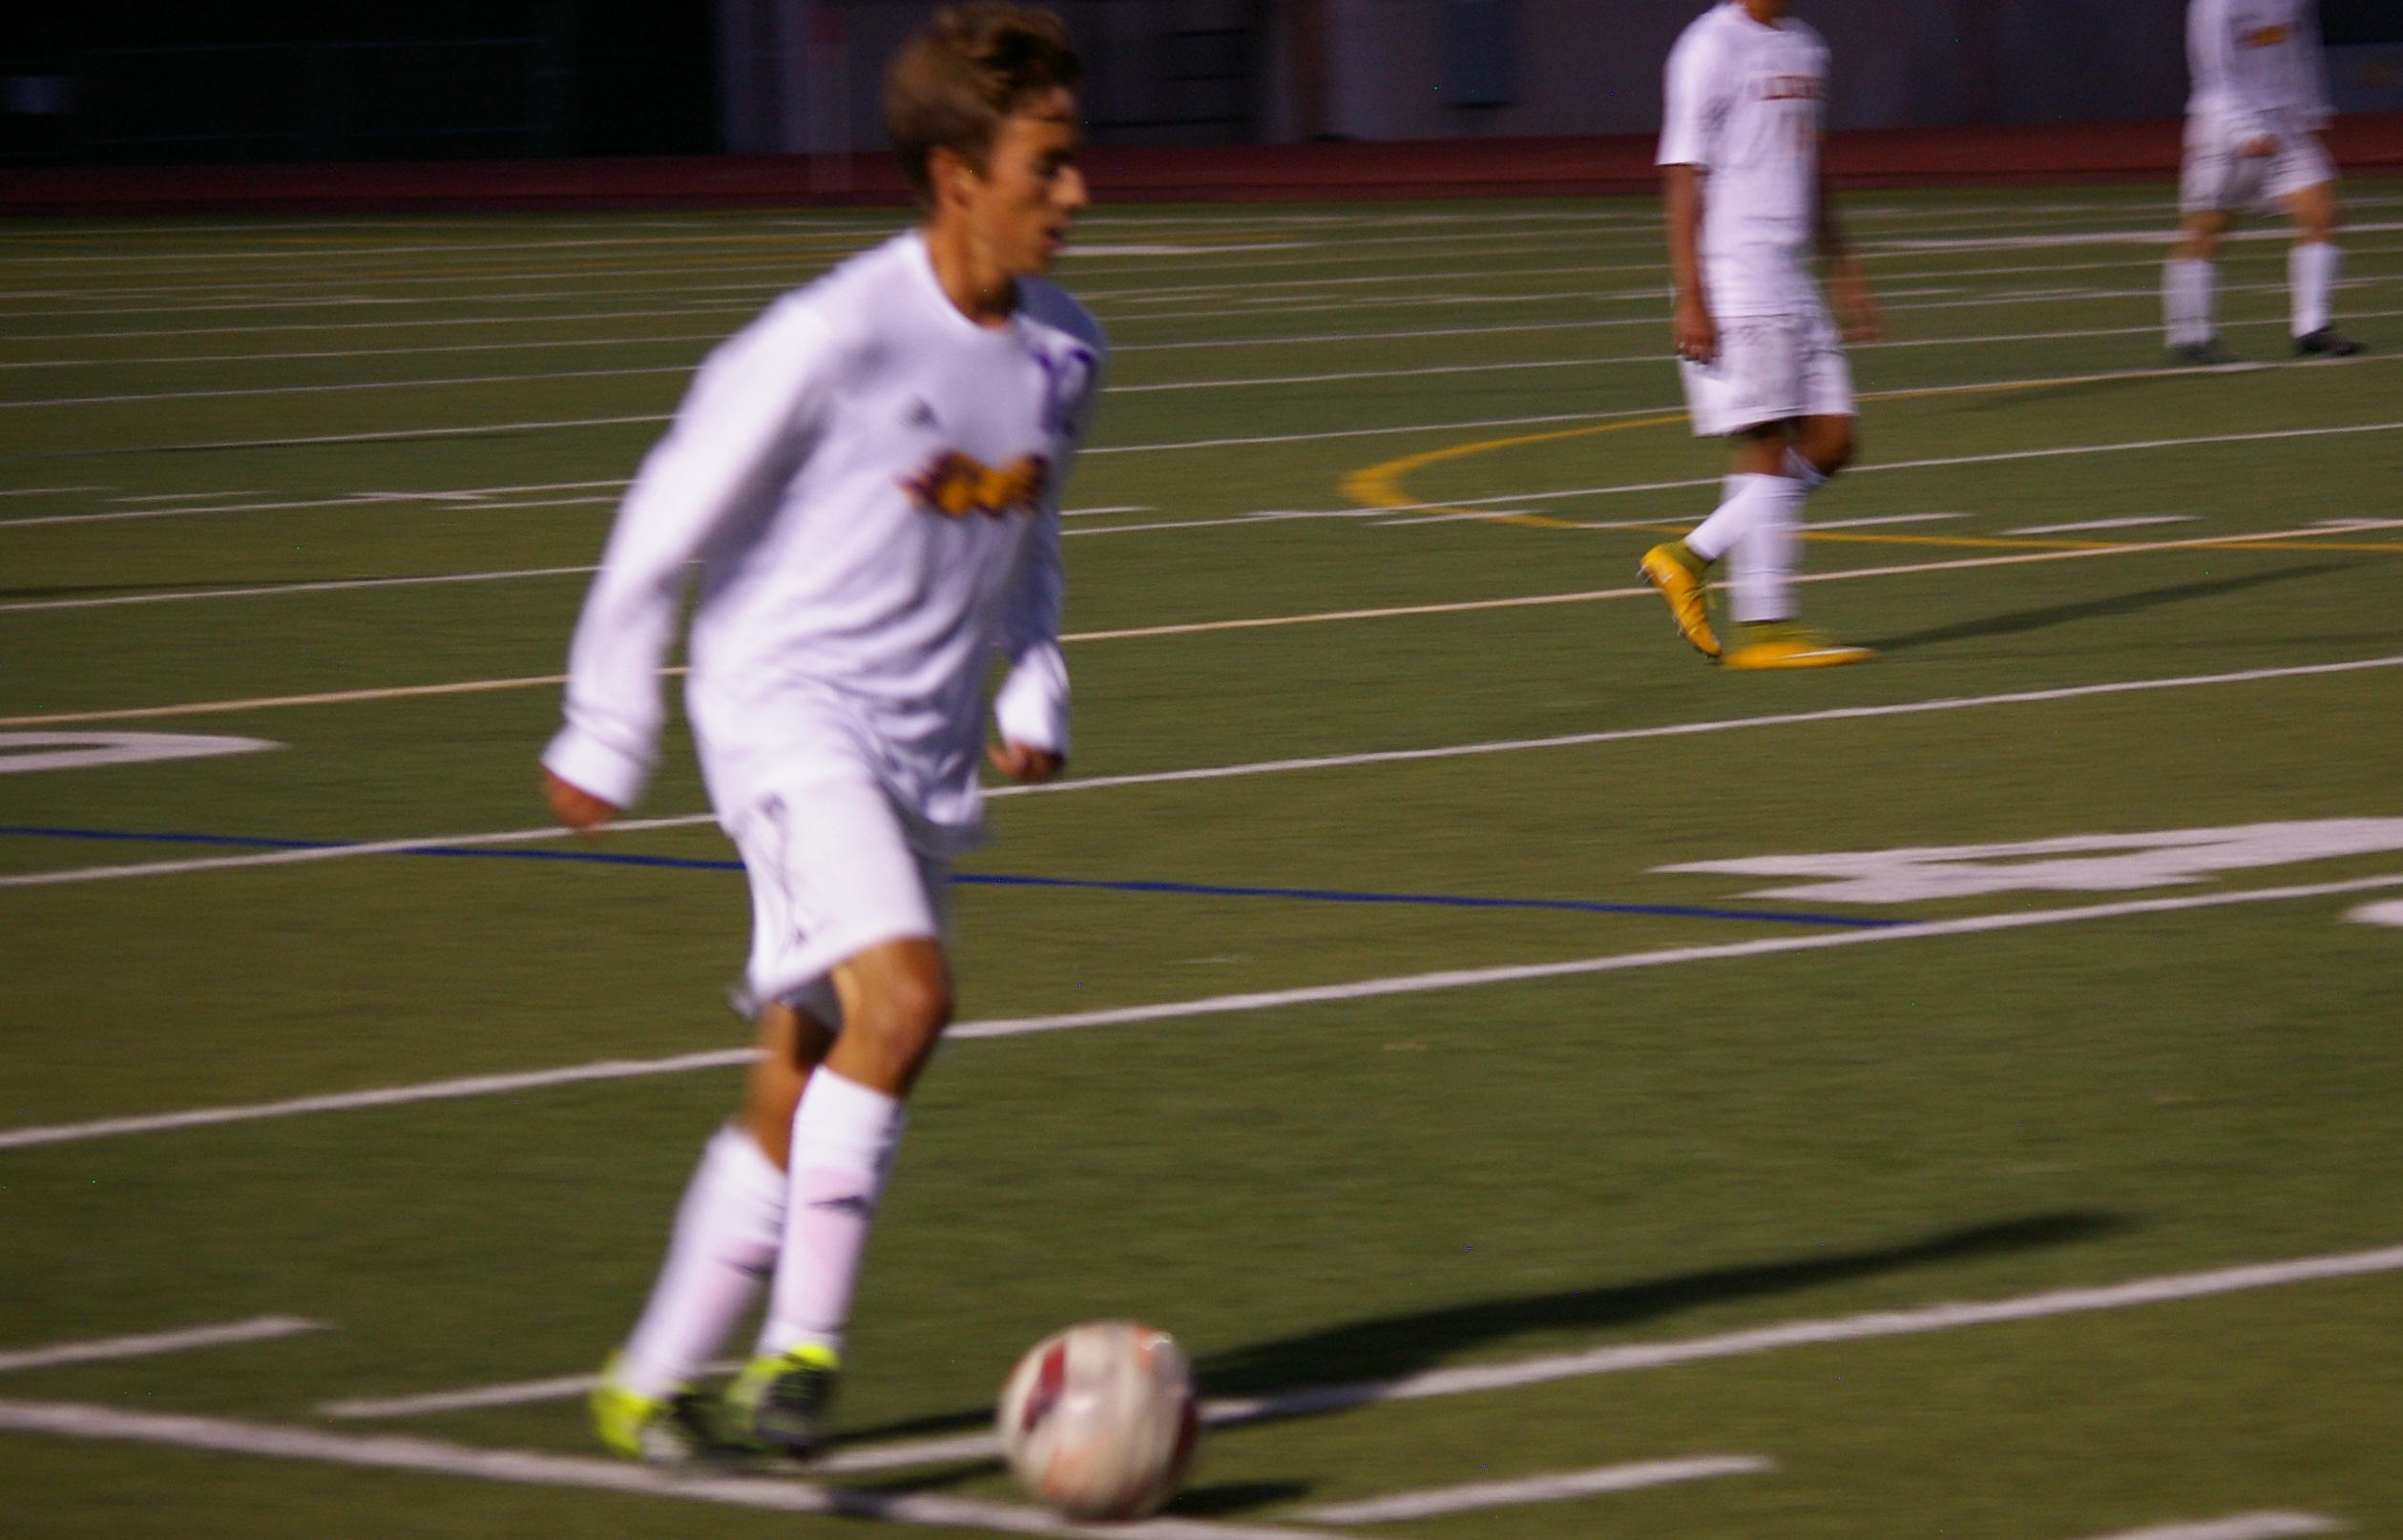 Senior Nathan Stauffer moves the ball down the field